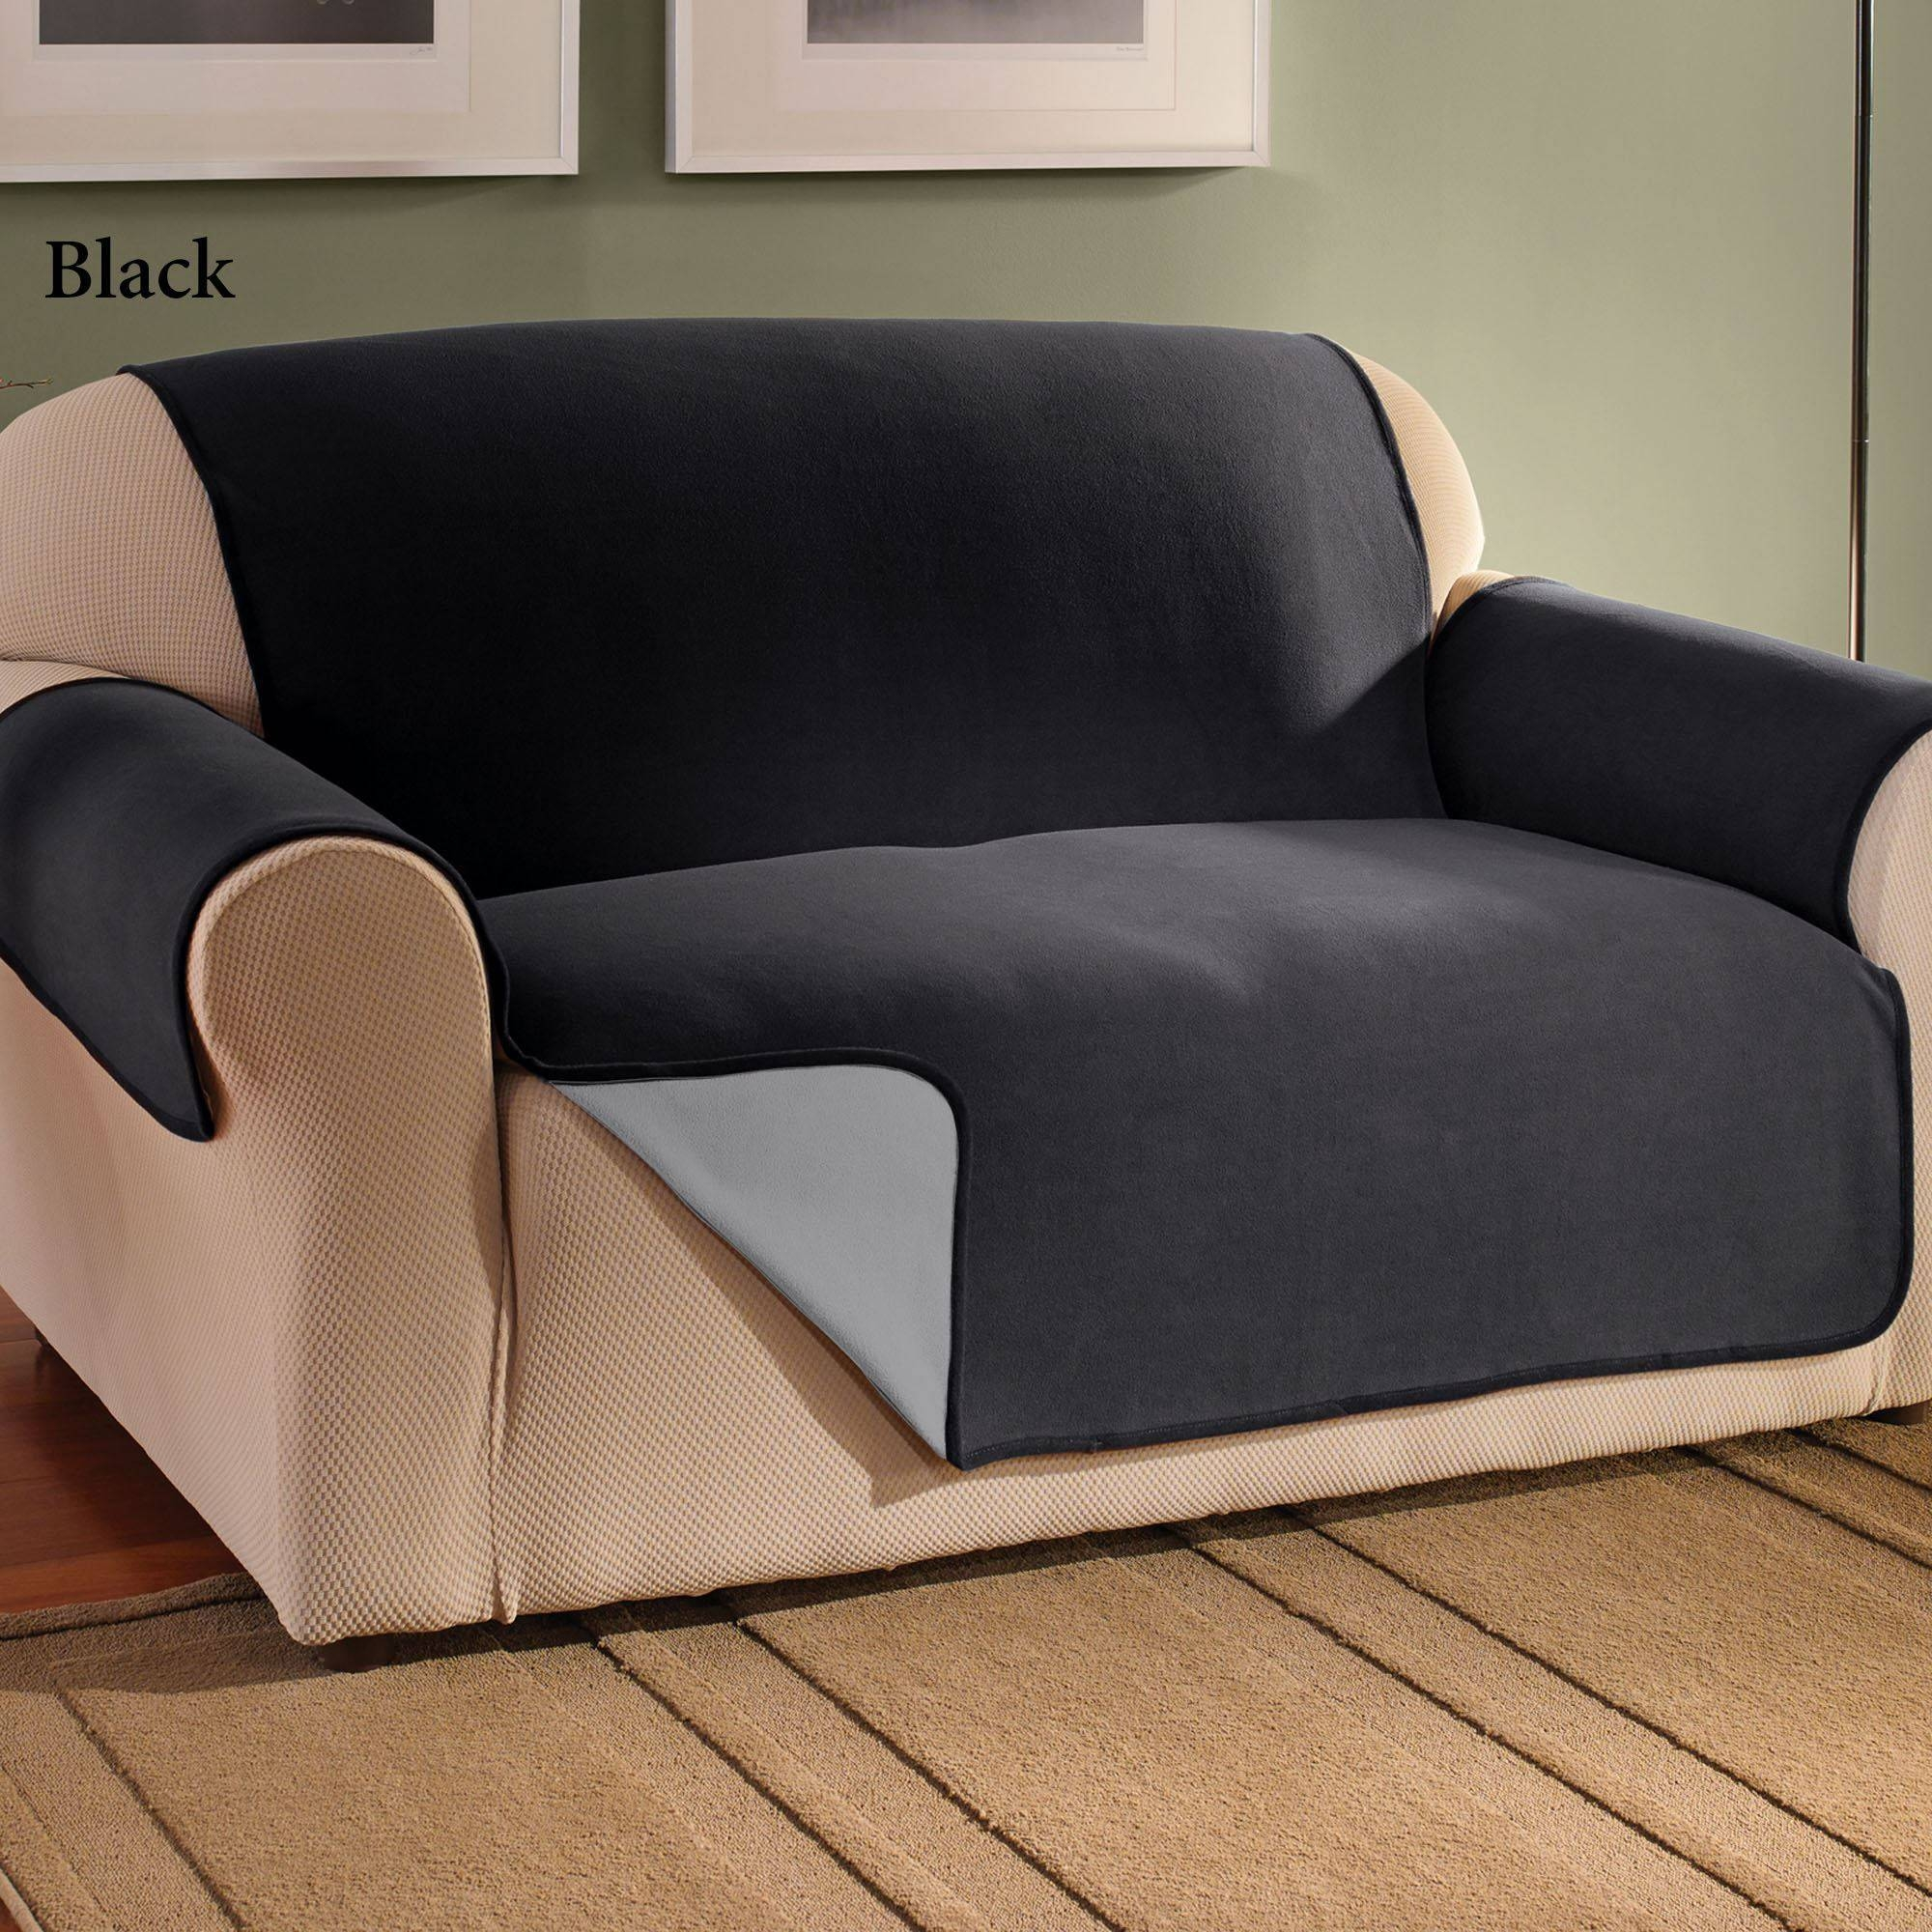 2019 Best Of Slipcover For Leather Sofas